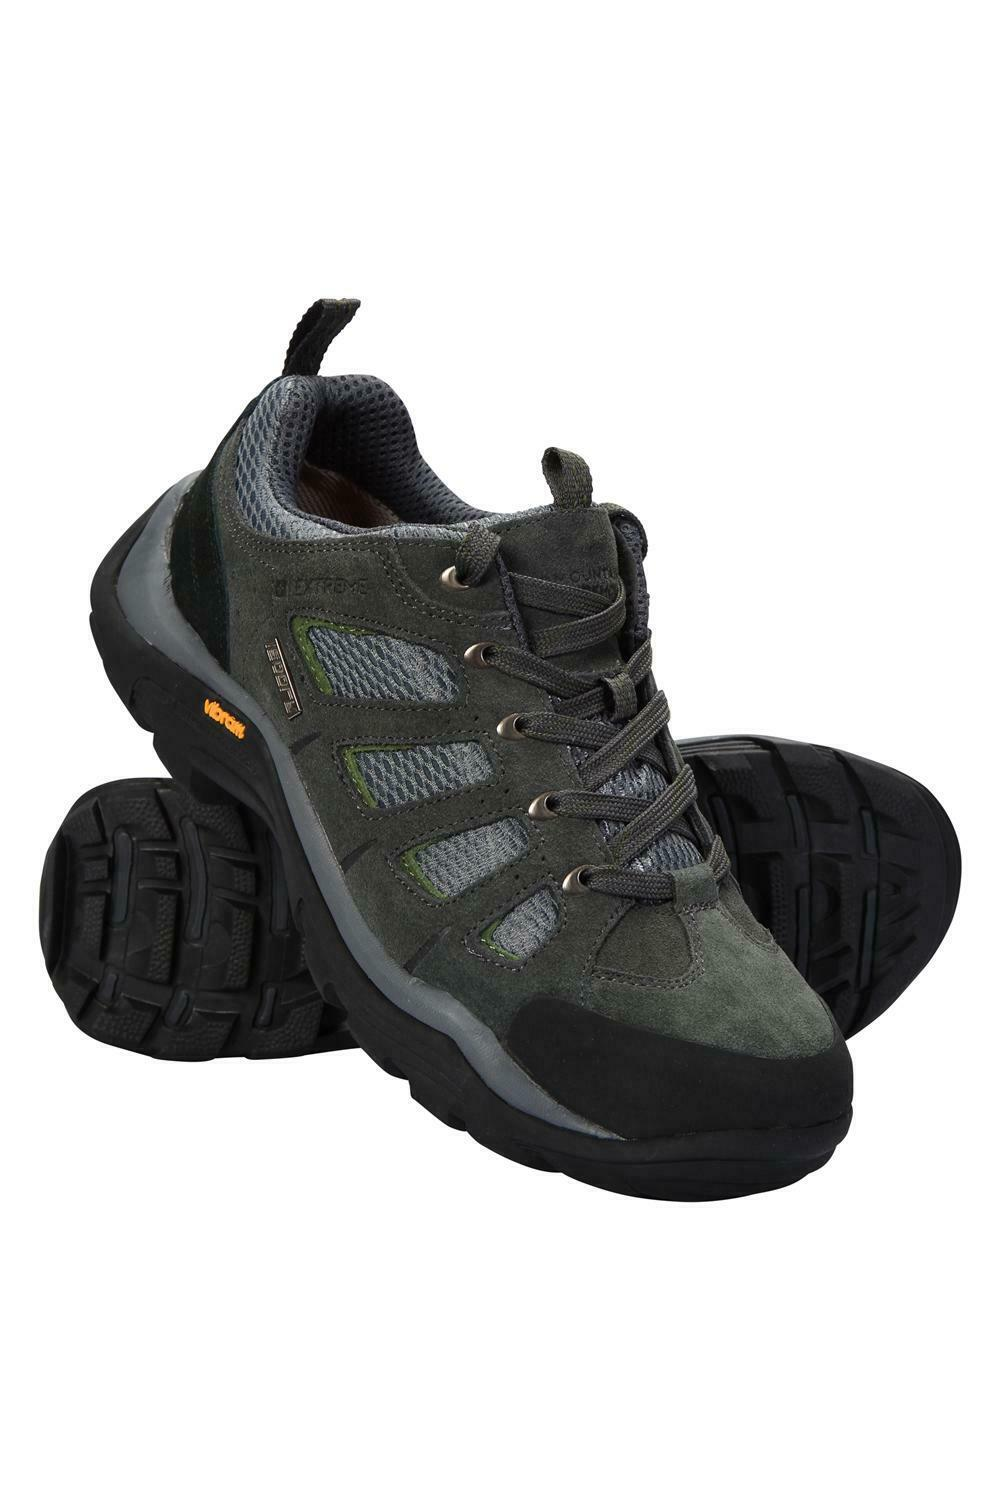 Mountain Warehouse Mens Waterproof shoes with Suede & Mesh Upper Highly Durable